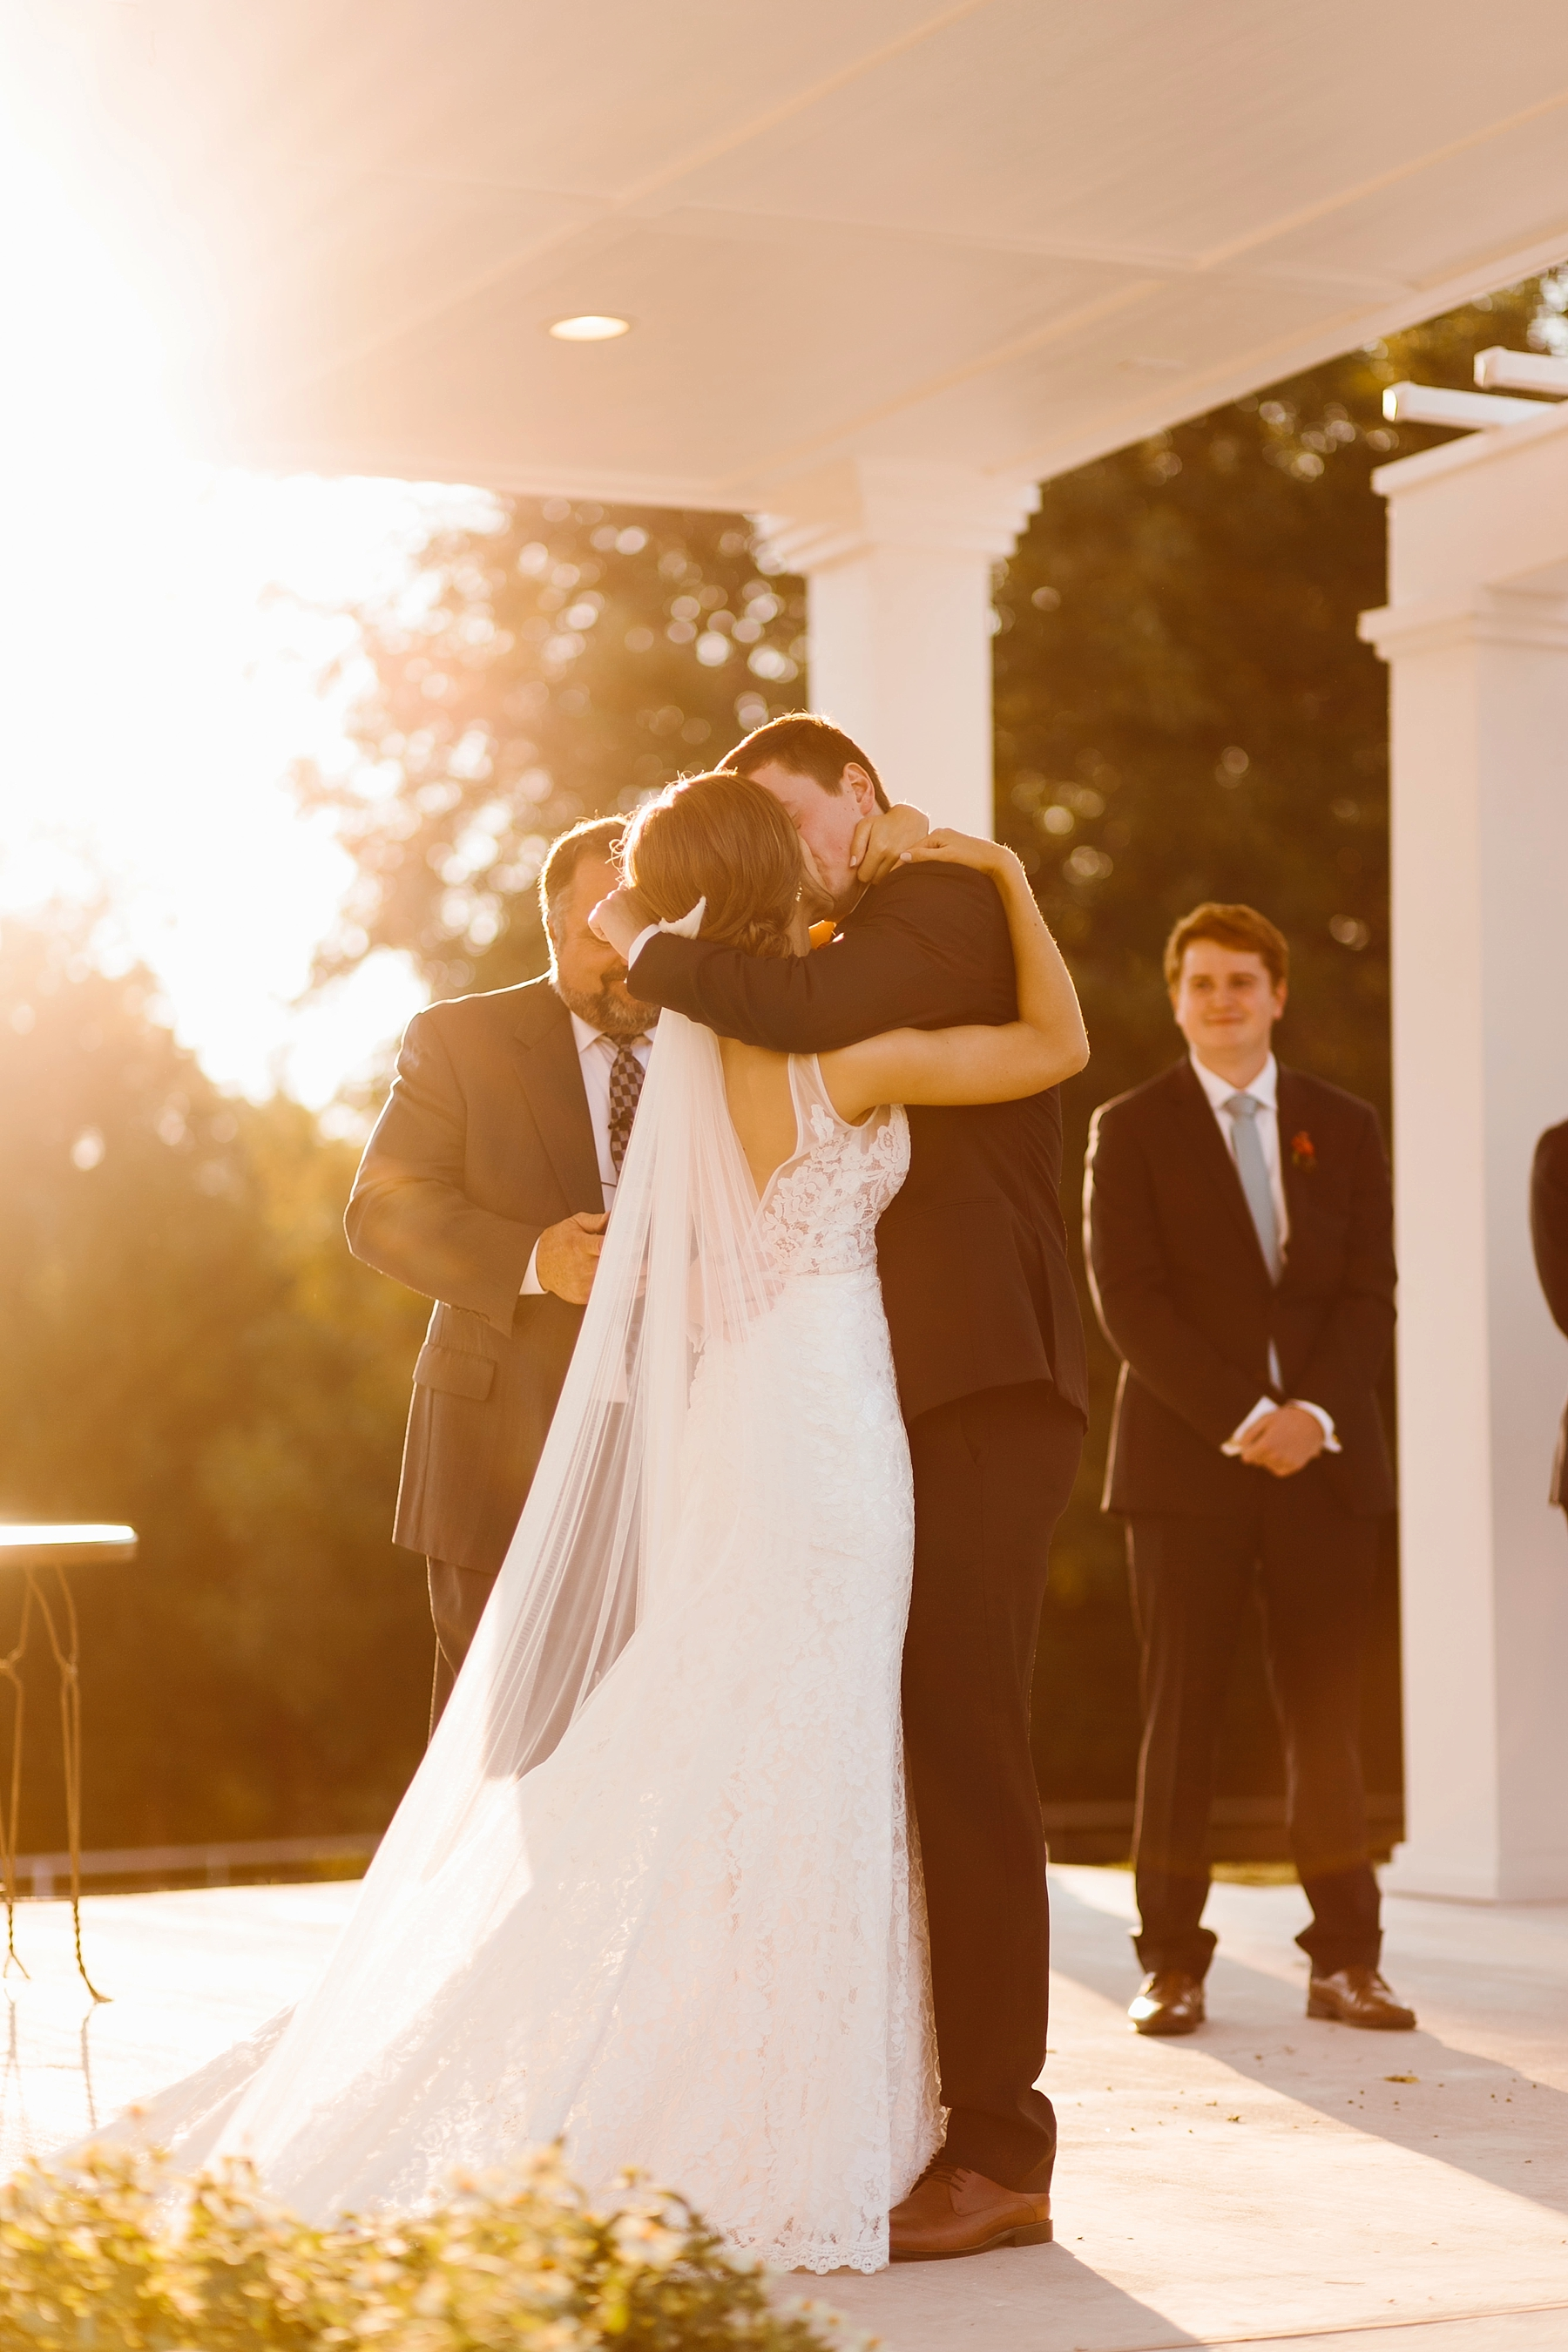 Lauren + Nathan _ a vibrant, wedding with a Navy, Red, and Duck Egg Blue Pallete at Firefly Gardens by North Texas Wedding Photographer Rachel Meagan Photography _ 090